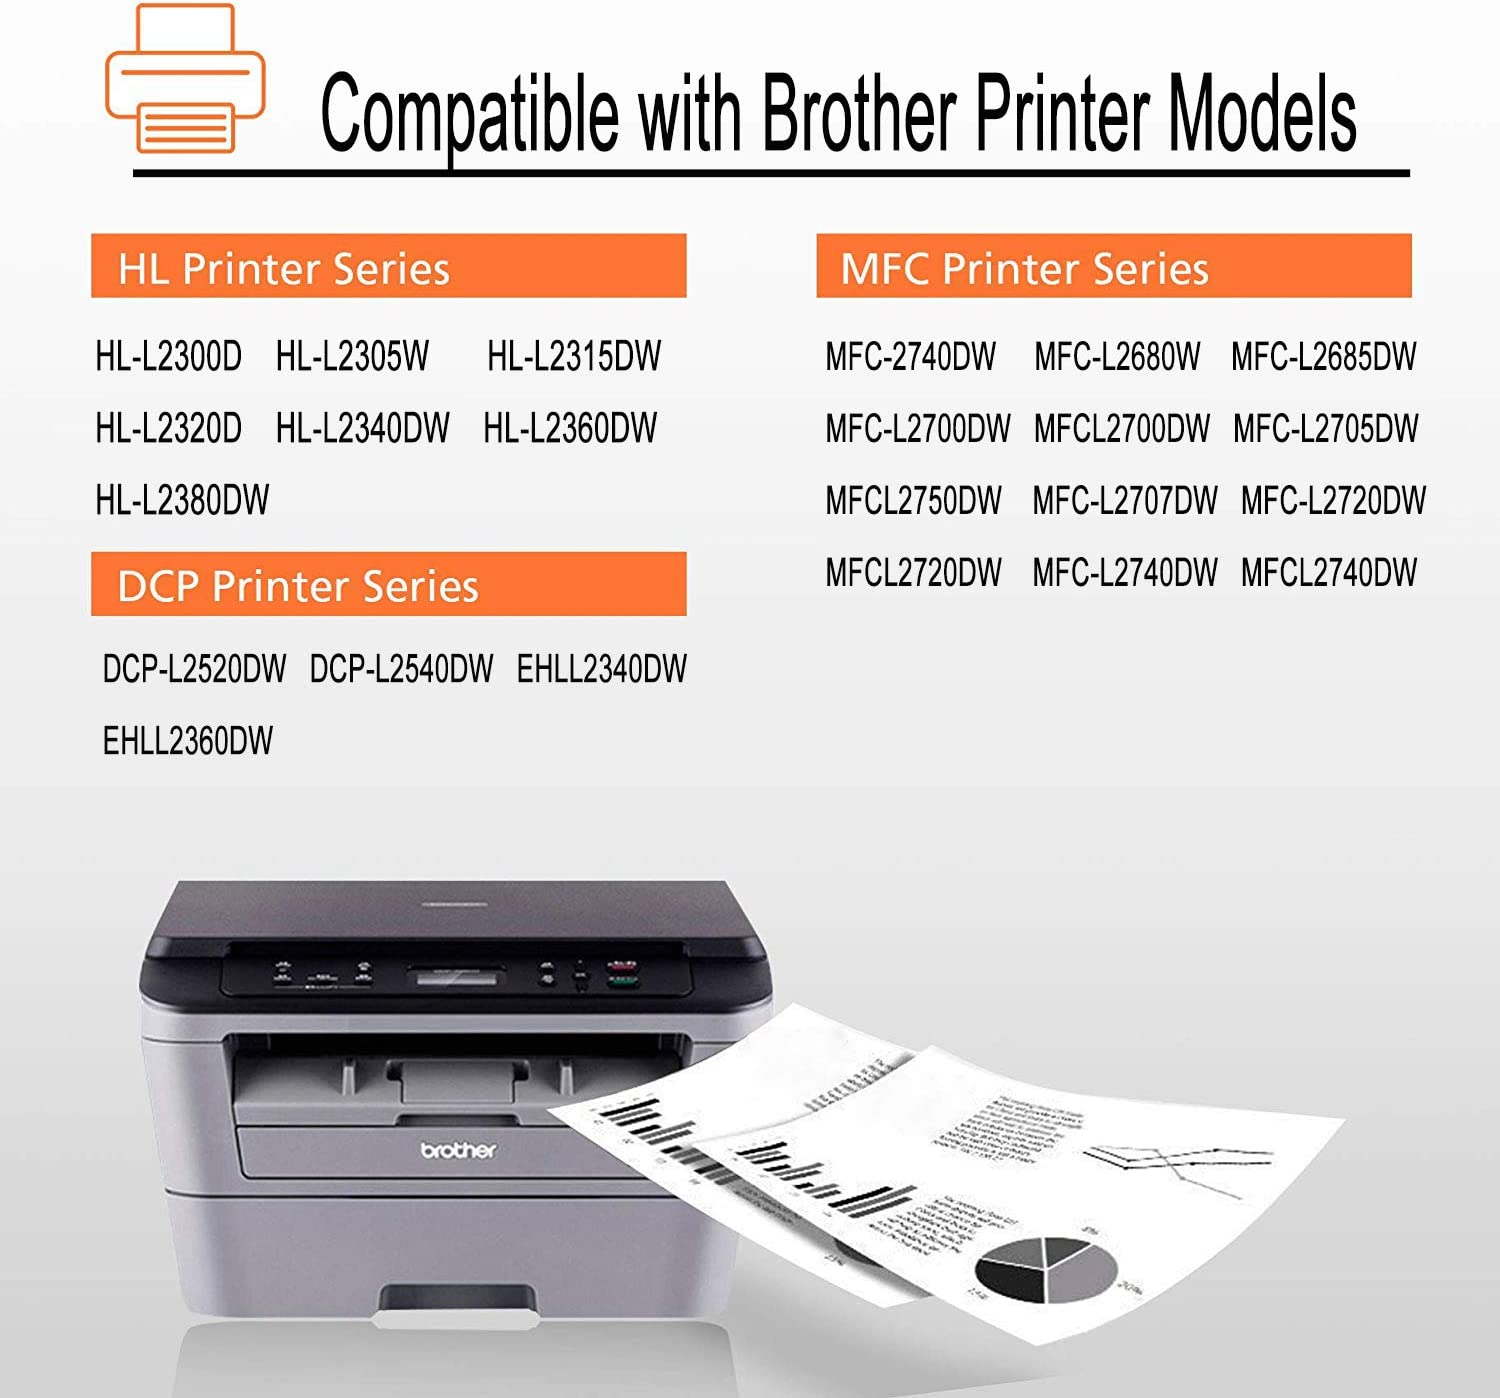 Work with Brother HL-L2340DW HL-L2380DW HL-L2300D MFC-L2700DW MFC-L2740DW DCP-L2540DW Printer Black, 3-Pack JinHan TN660 Compatible Toner Cartridge Replacement for Brother TN-660 TN-630 TN630 Toner